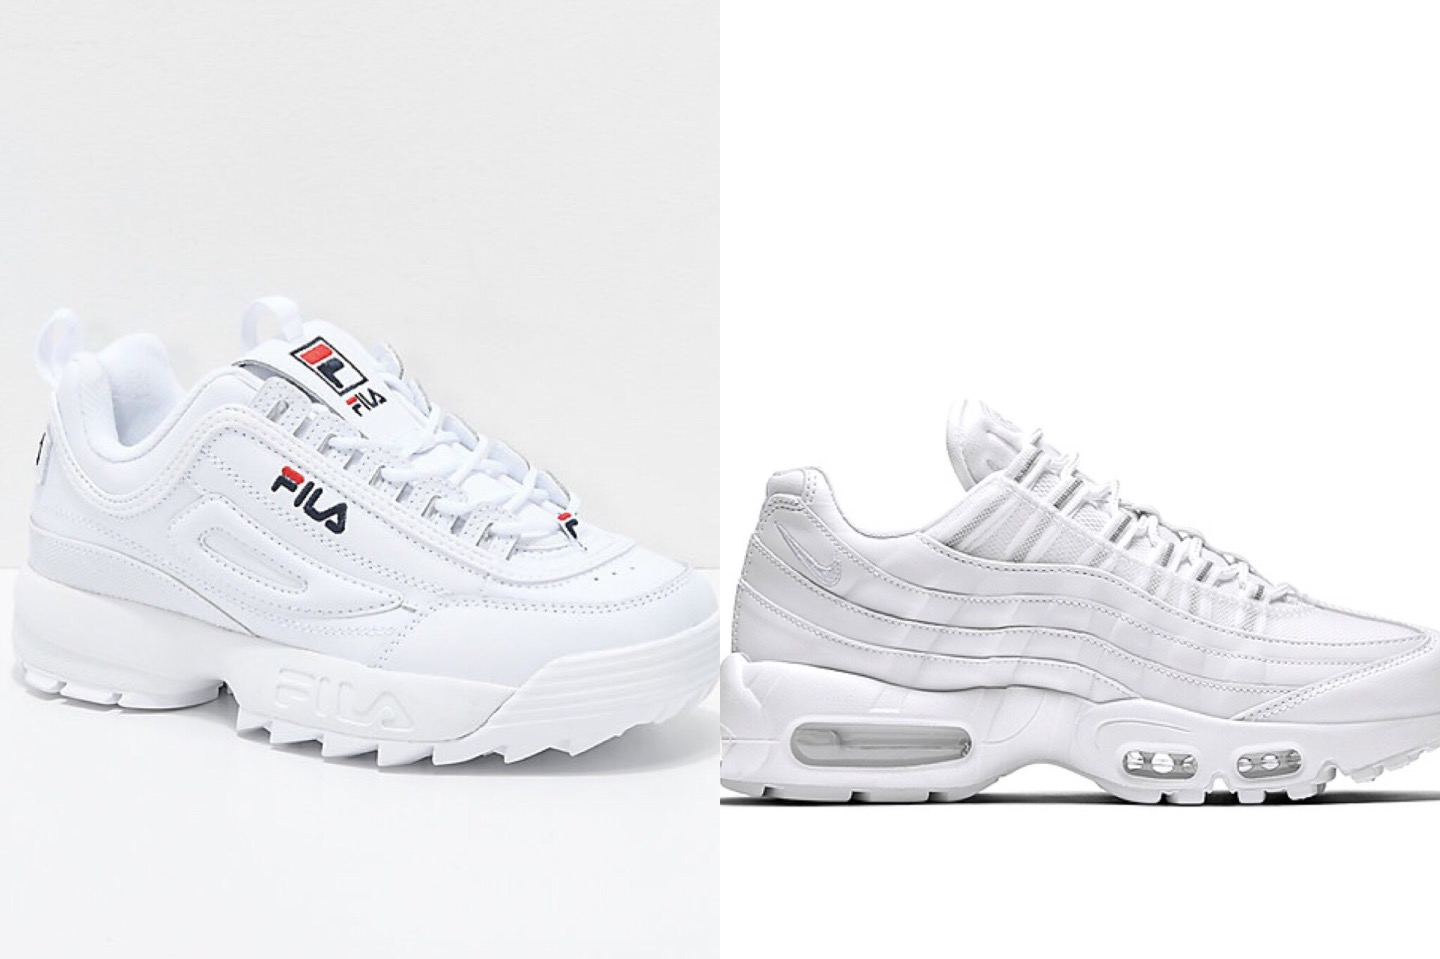 Nike air max 97 vs Adidas superstar vs Fila distruptor